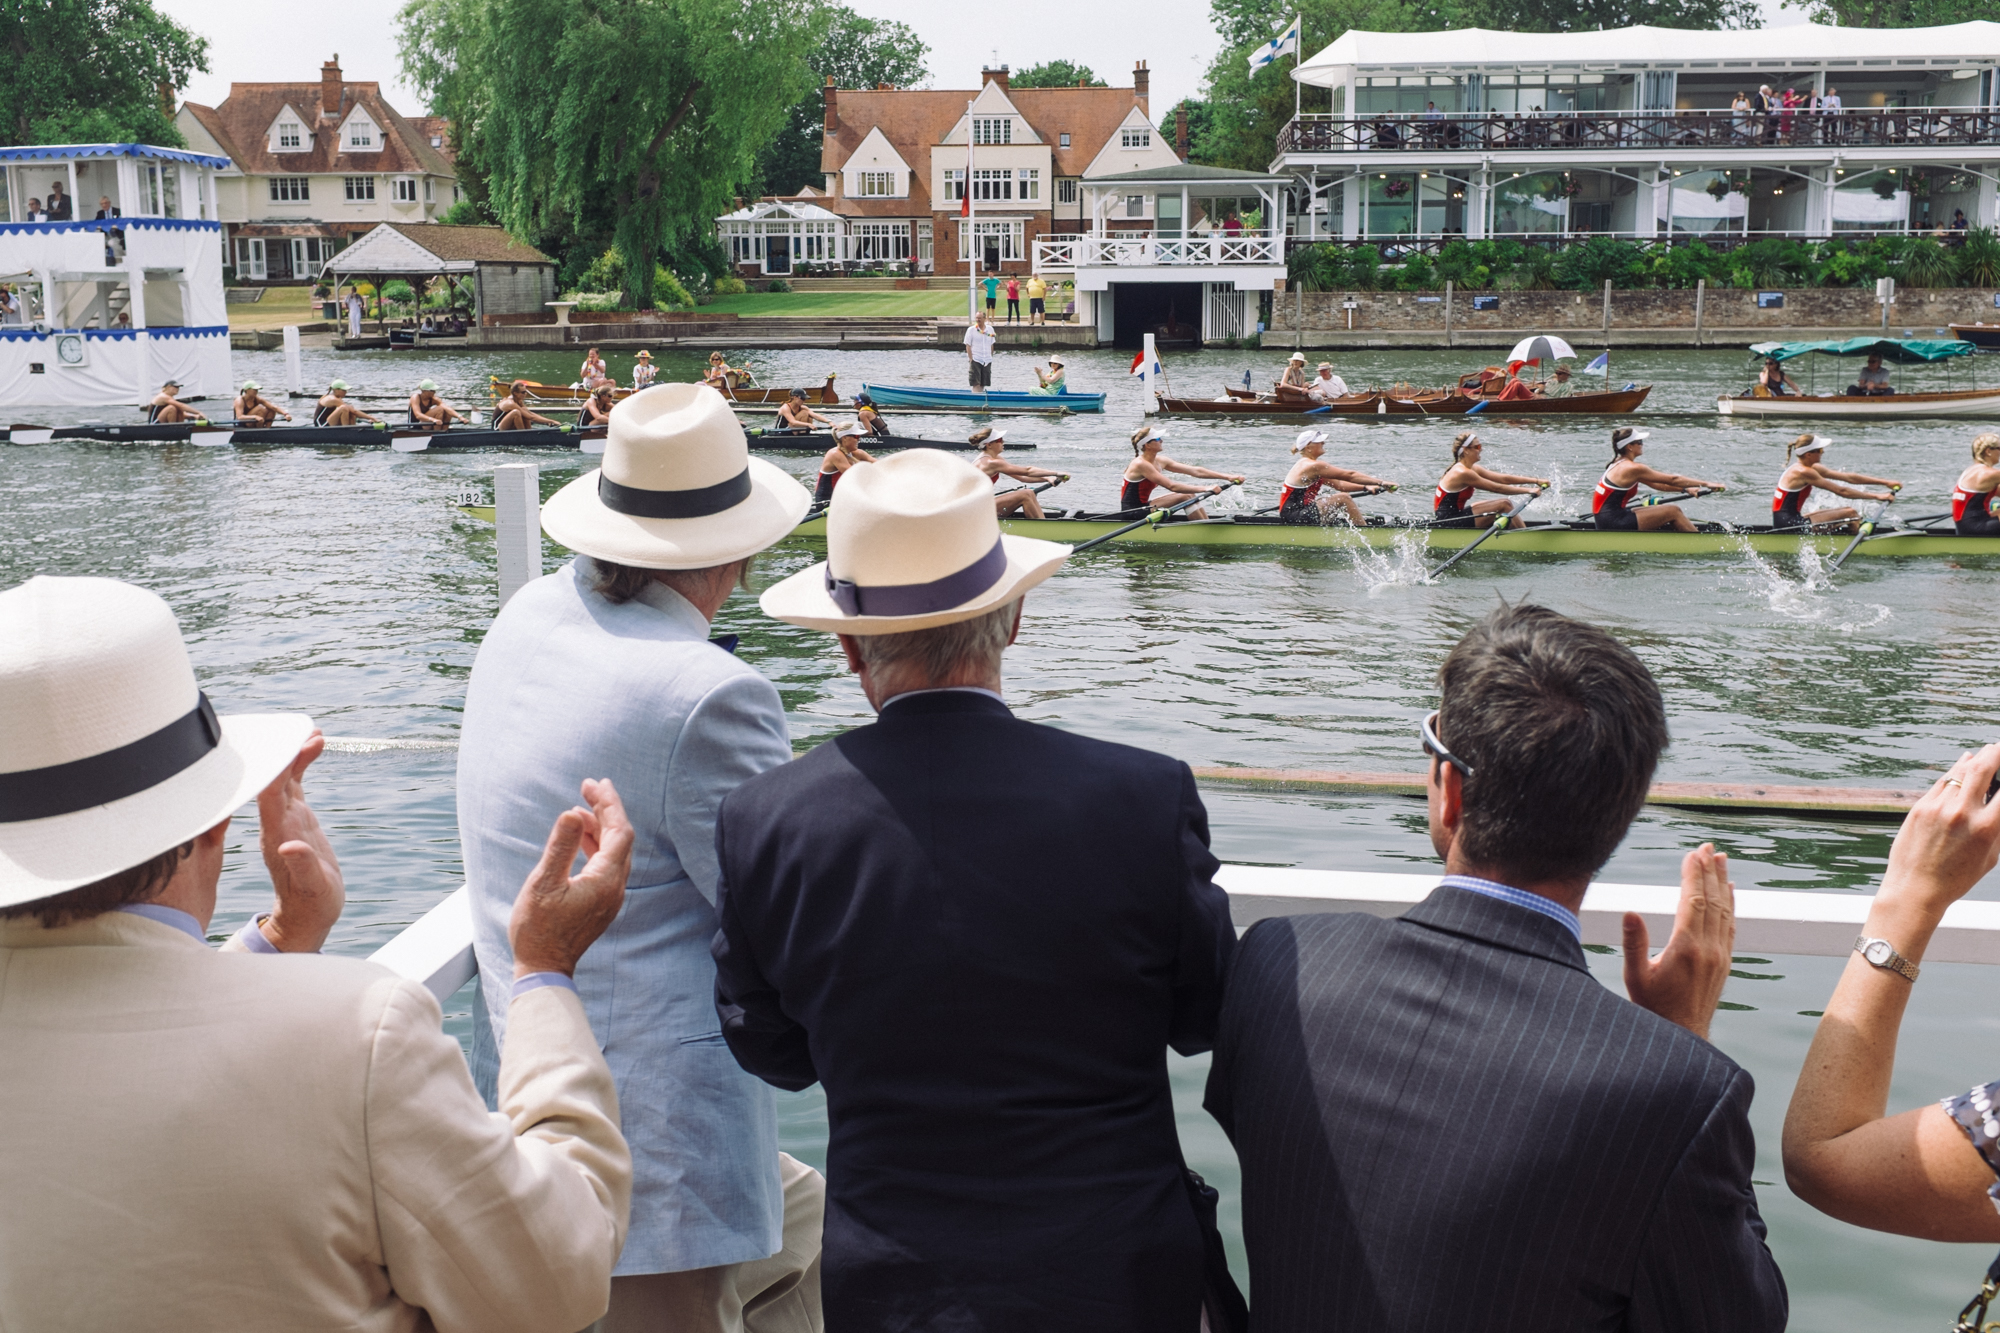 Crews race in the Remenham Challenge Cup – an event for women's eights. Woman were first allowed to compete at Henley Royal in 1993, although the number of events open to them today is still less than is available for men.